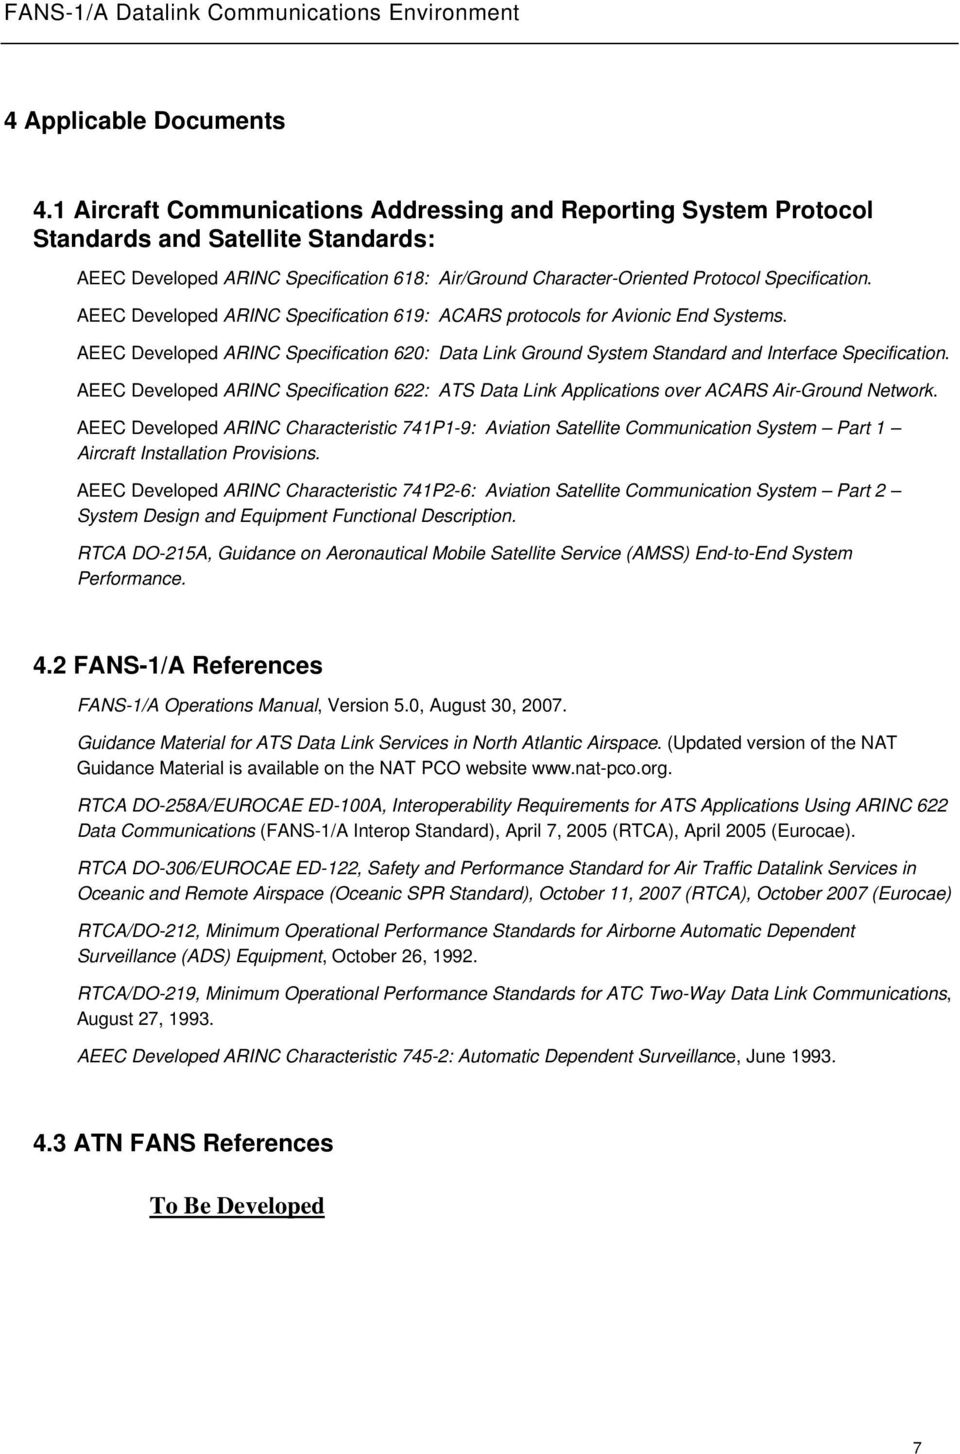 AEEC Developed ARINC Specification 619: ACARS protocols for Avionic End Systems. AEEC Developed ARINC Specification 620: Data Link Ground System Standard and Interface Specification.